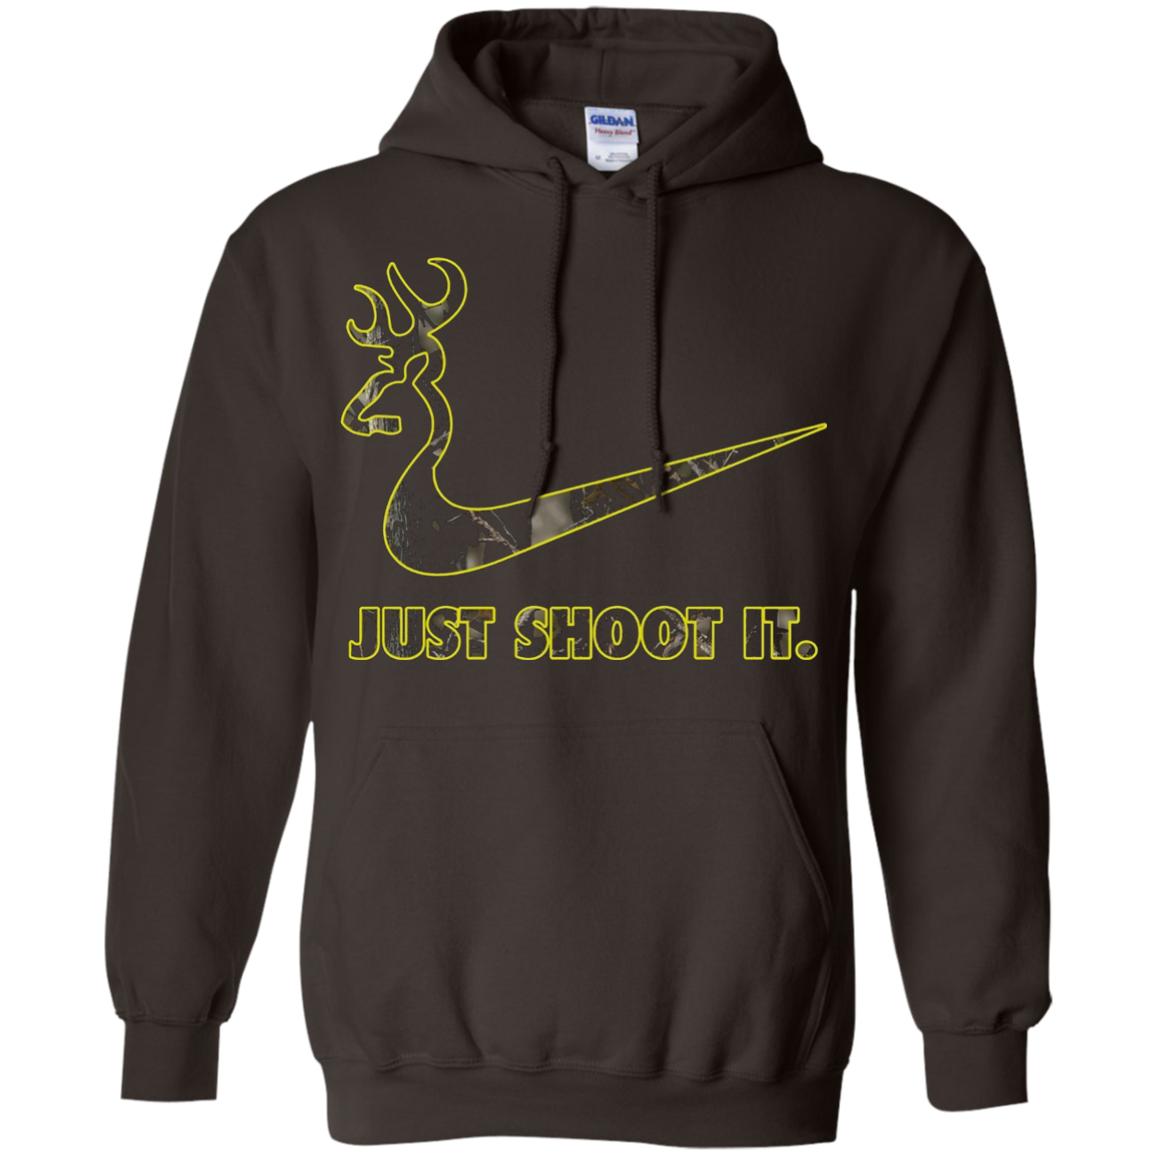 Just Shoot It - Camo Deer Hunting T-Shirt